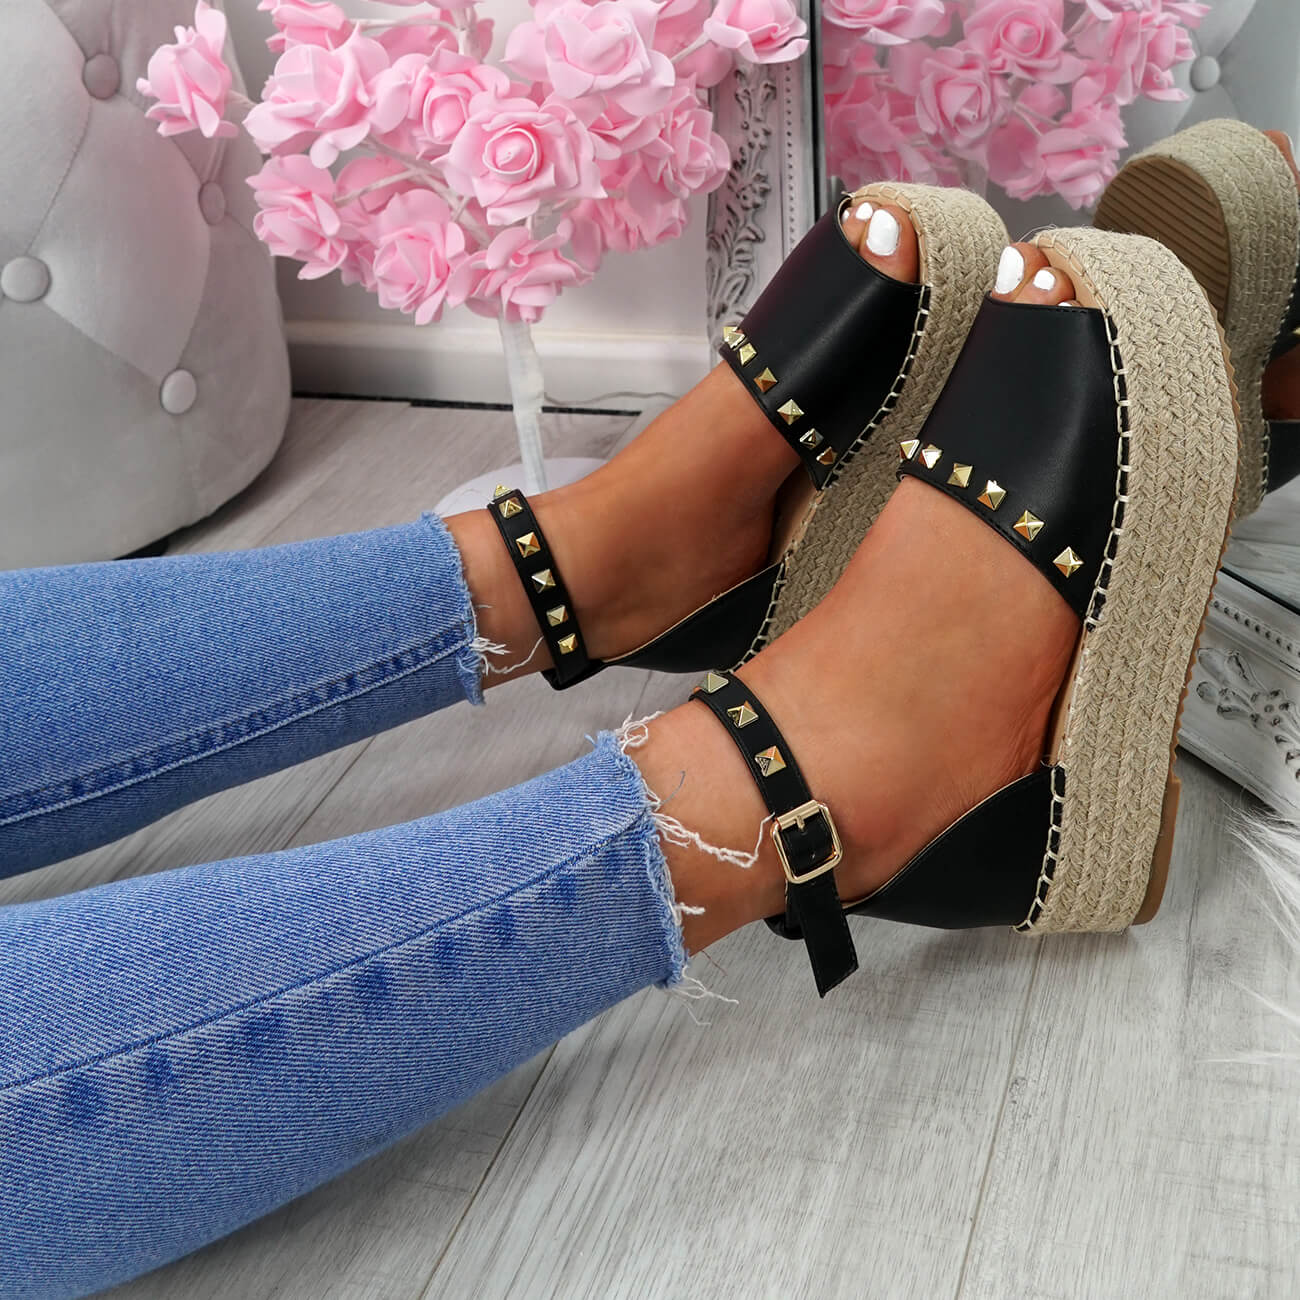 WOMENS-LADIES-ROCK-STUDS-ESPADRILLE-FLATFORM-PLATFORM-SANDALS-CASUAL-SHOES-SIZE thumbnail 9